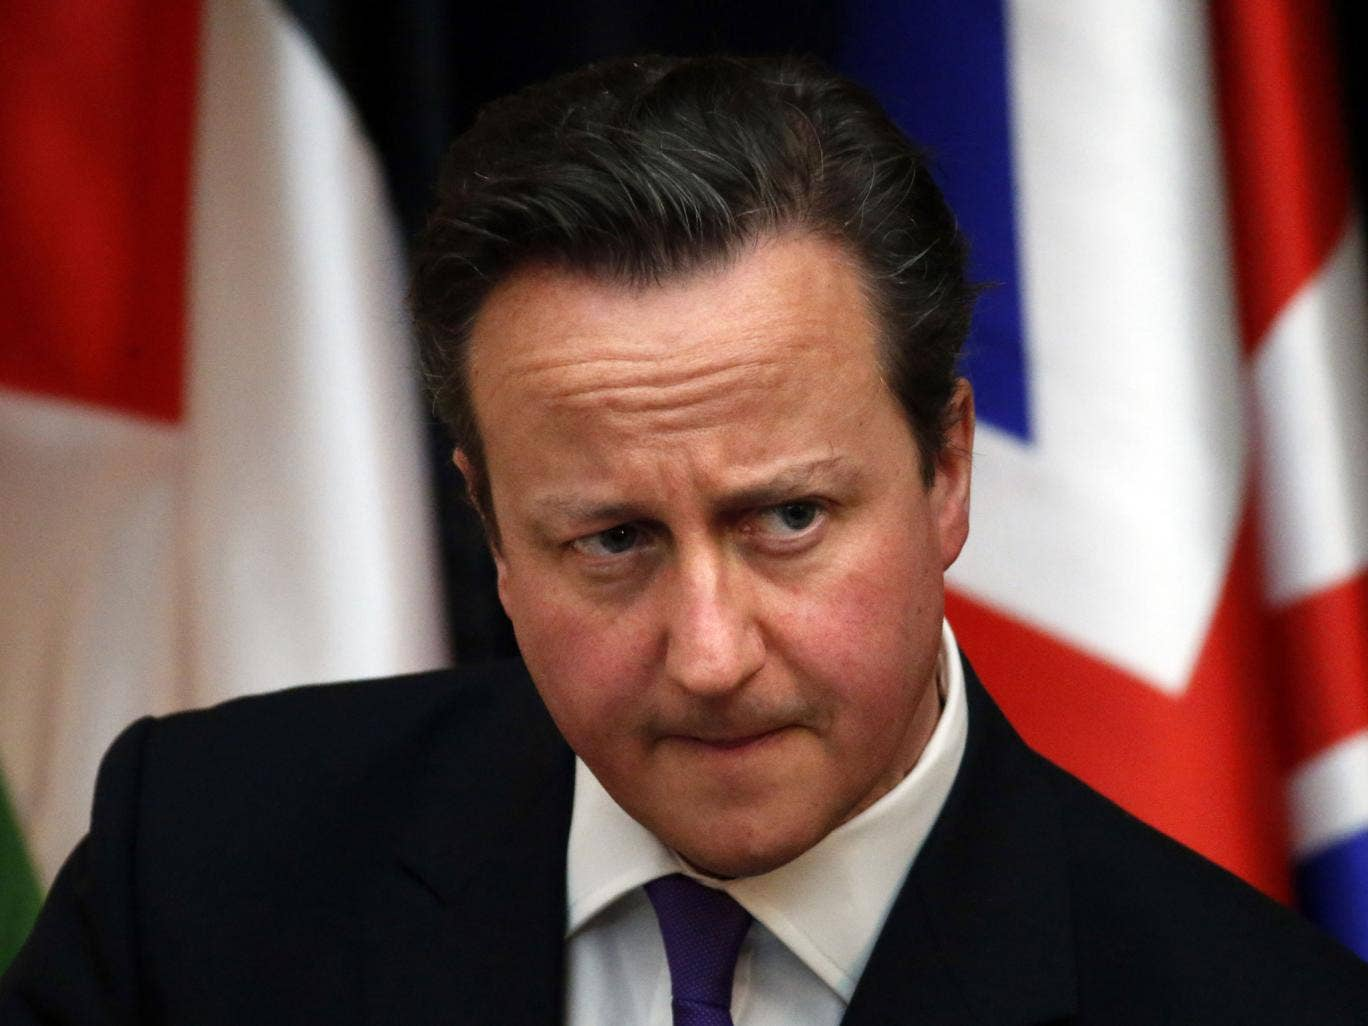 """Prime Minister David Cameron has hailed """"real progress"""" in the international response to Russia's annexation of Crimea"""